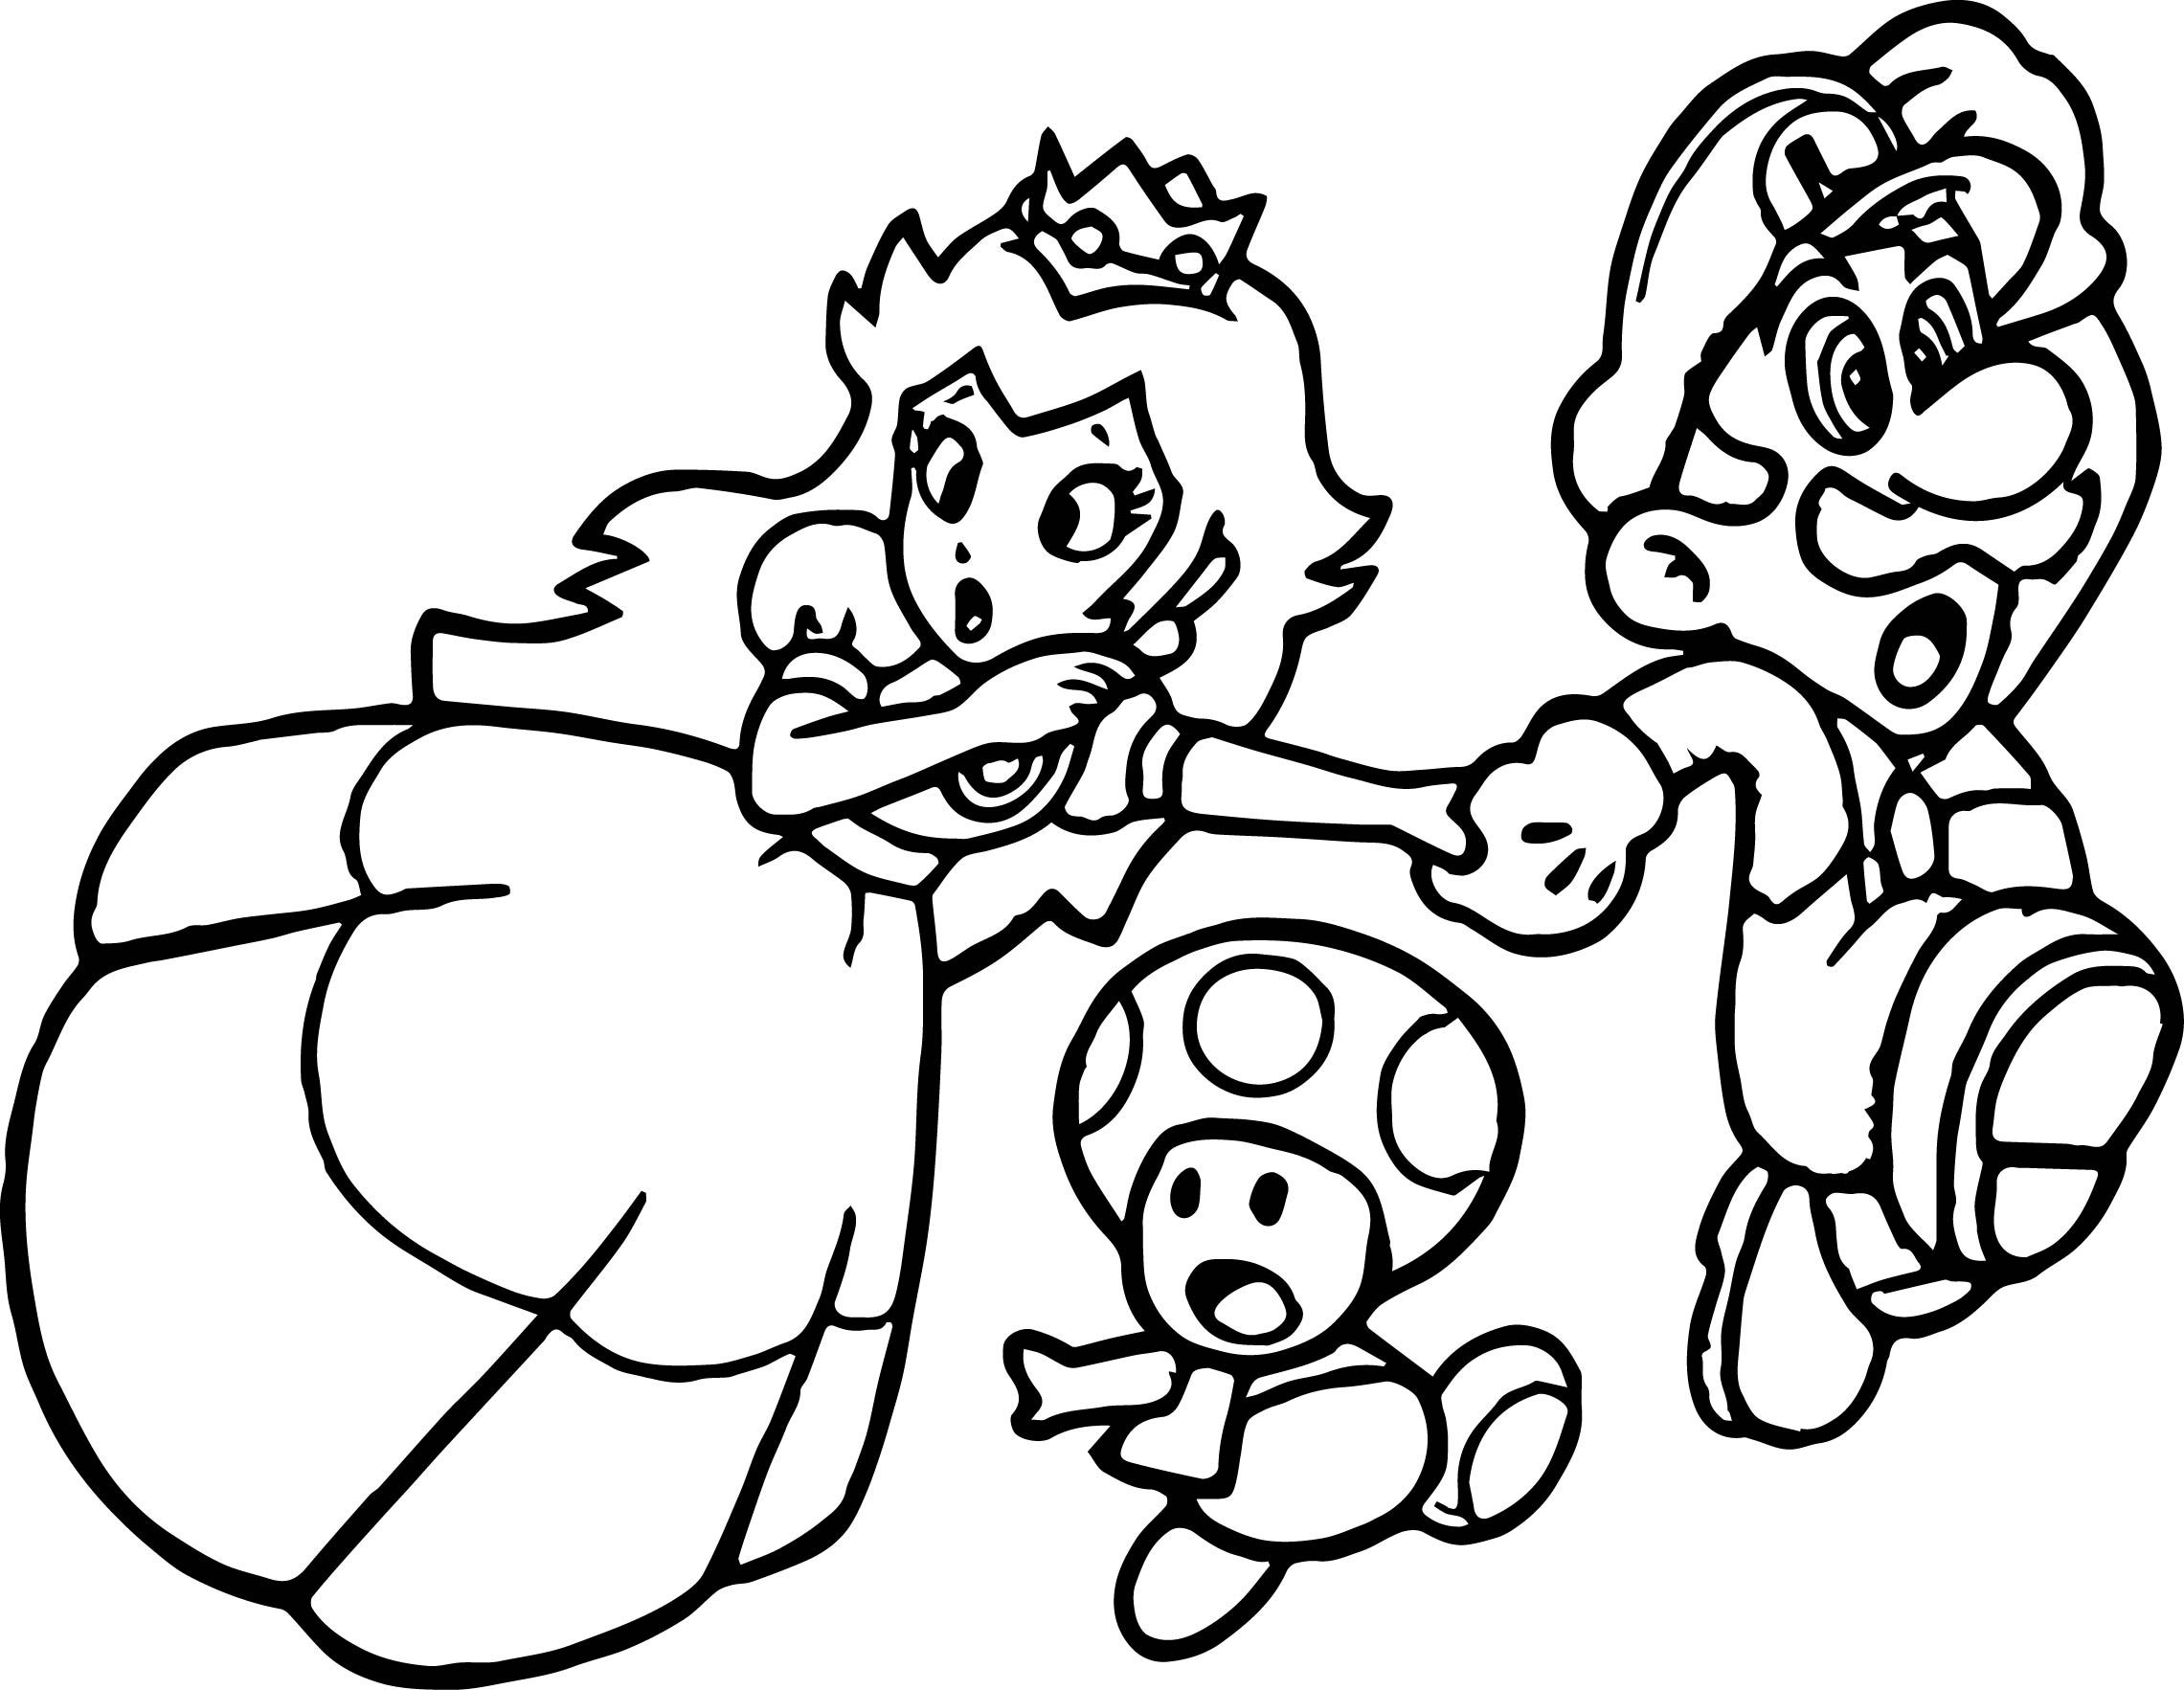 Super Mario Princess Mushroom Coloring Page Super Mario Coloring Pages Mario Coloring Pages Cartoon Coloring Pages